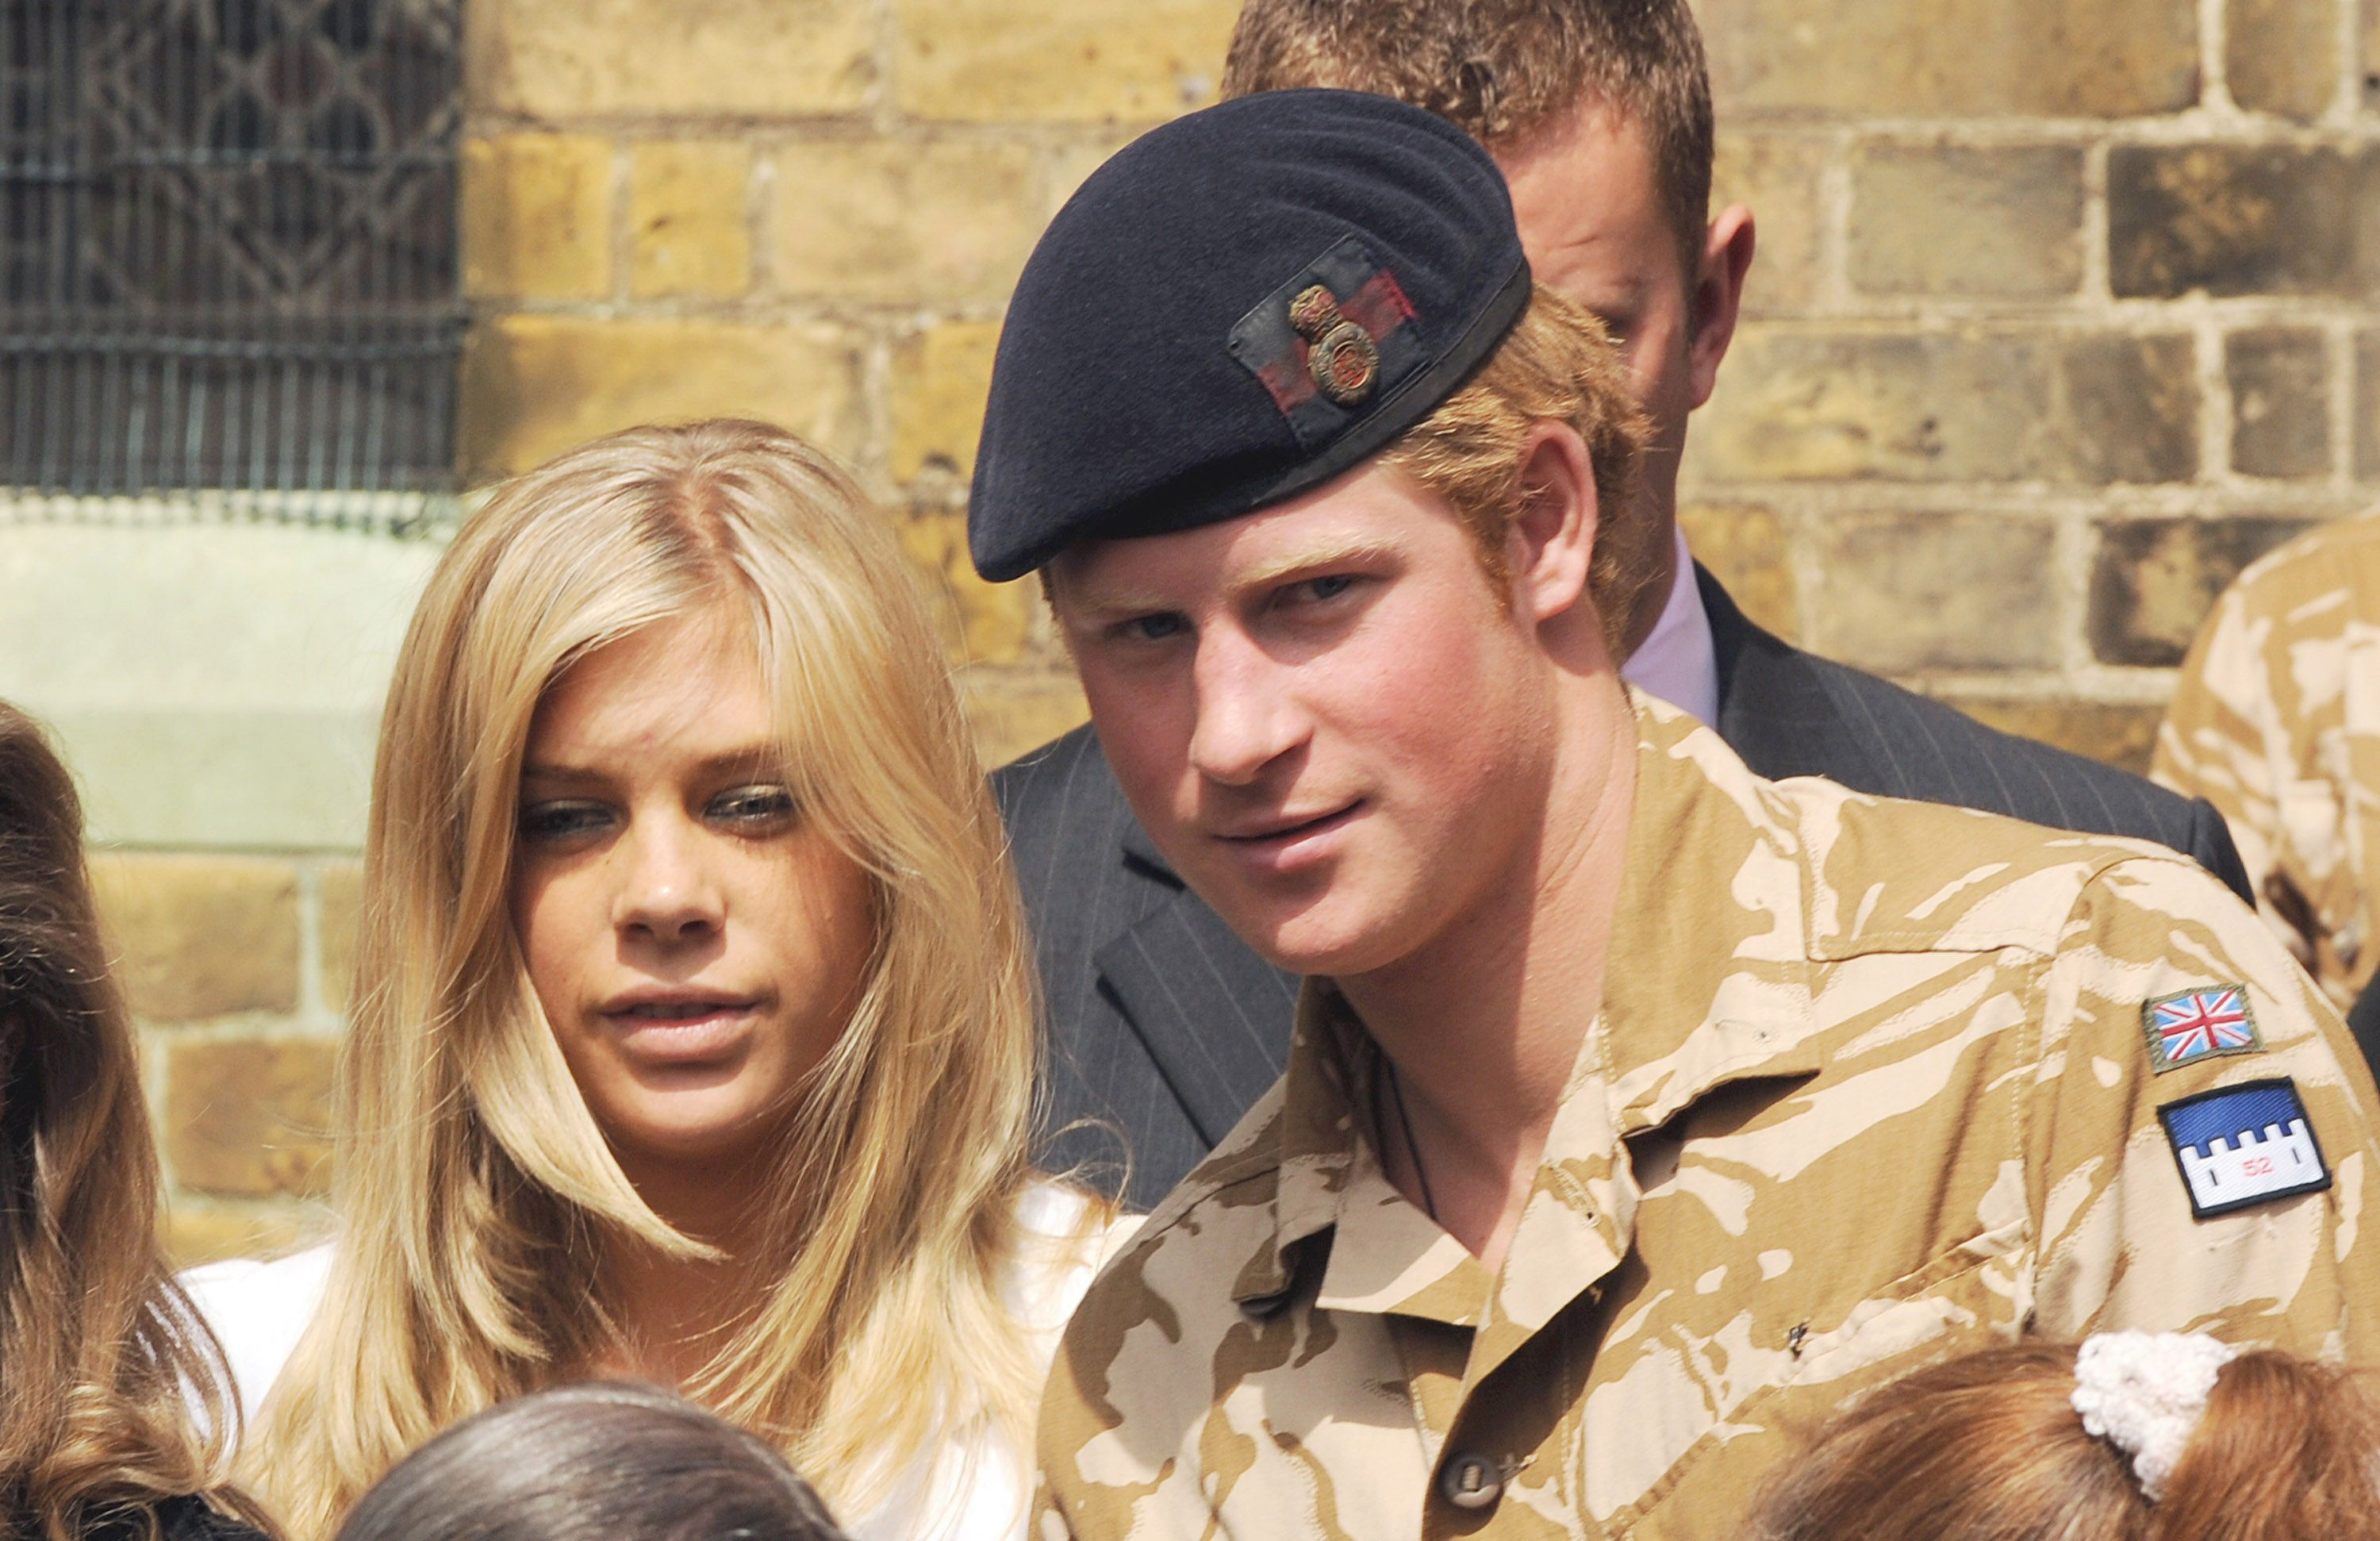 Prince Harry and Chelsy Davy split pics